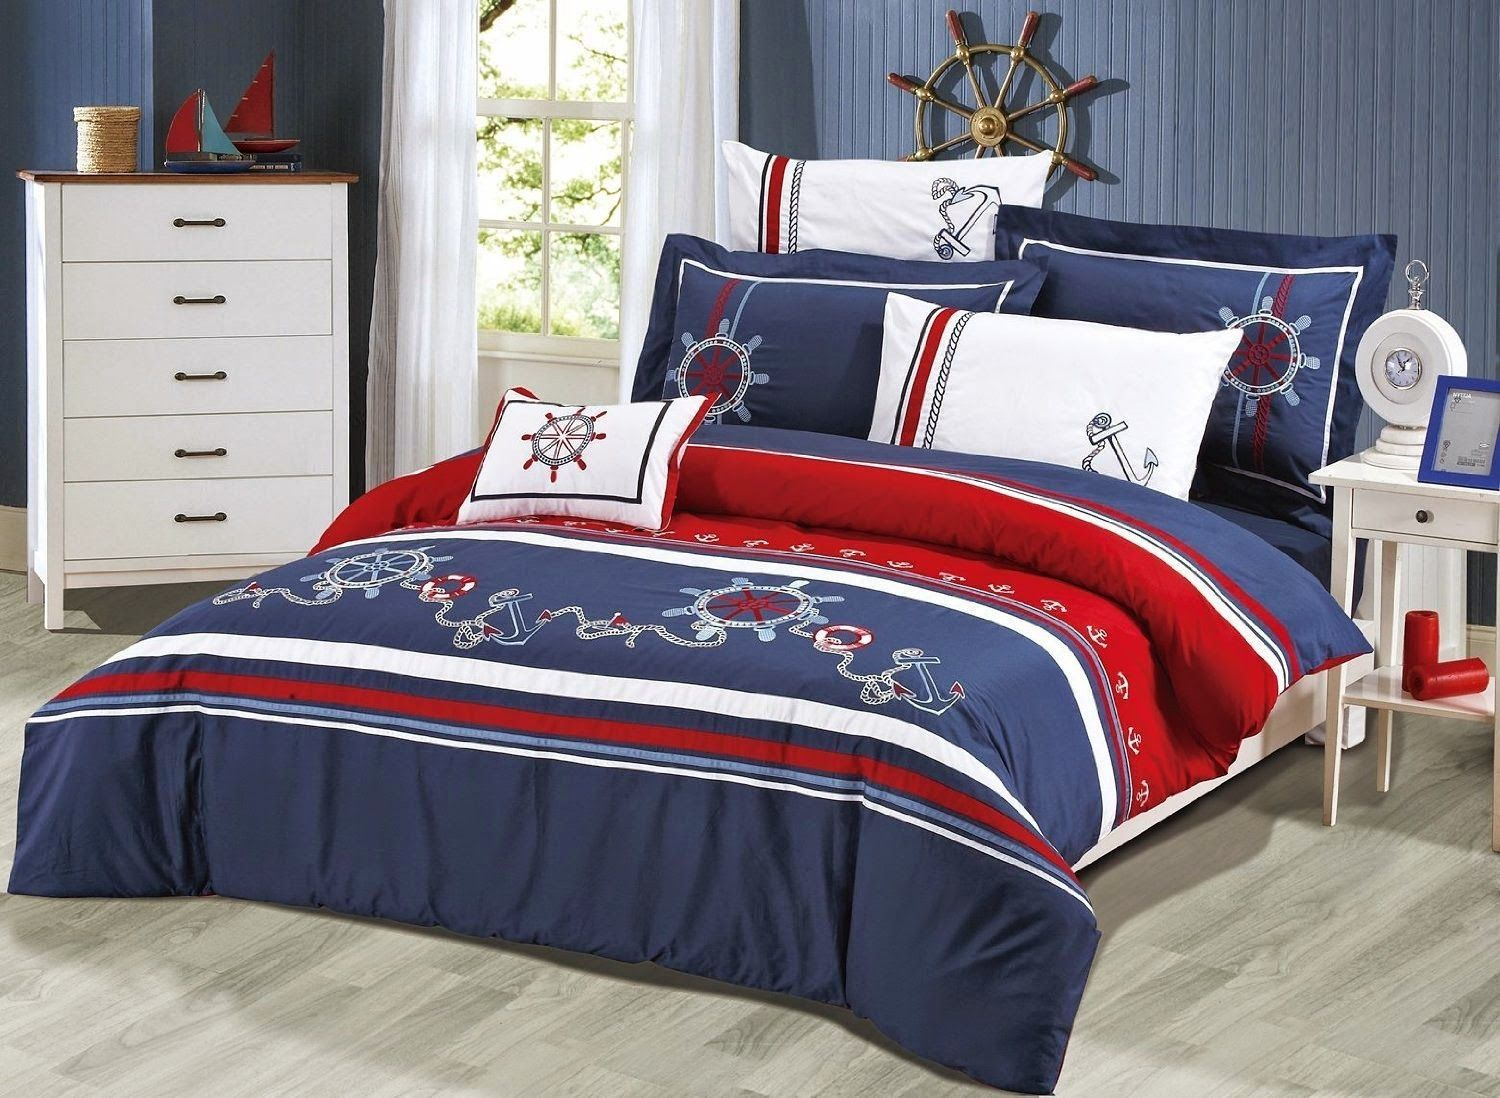 Bedroom Decor Ideas and Designs Top Nautical Sailor Themed